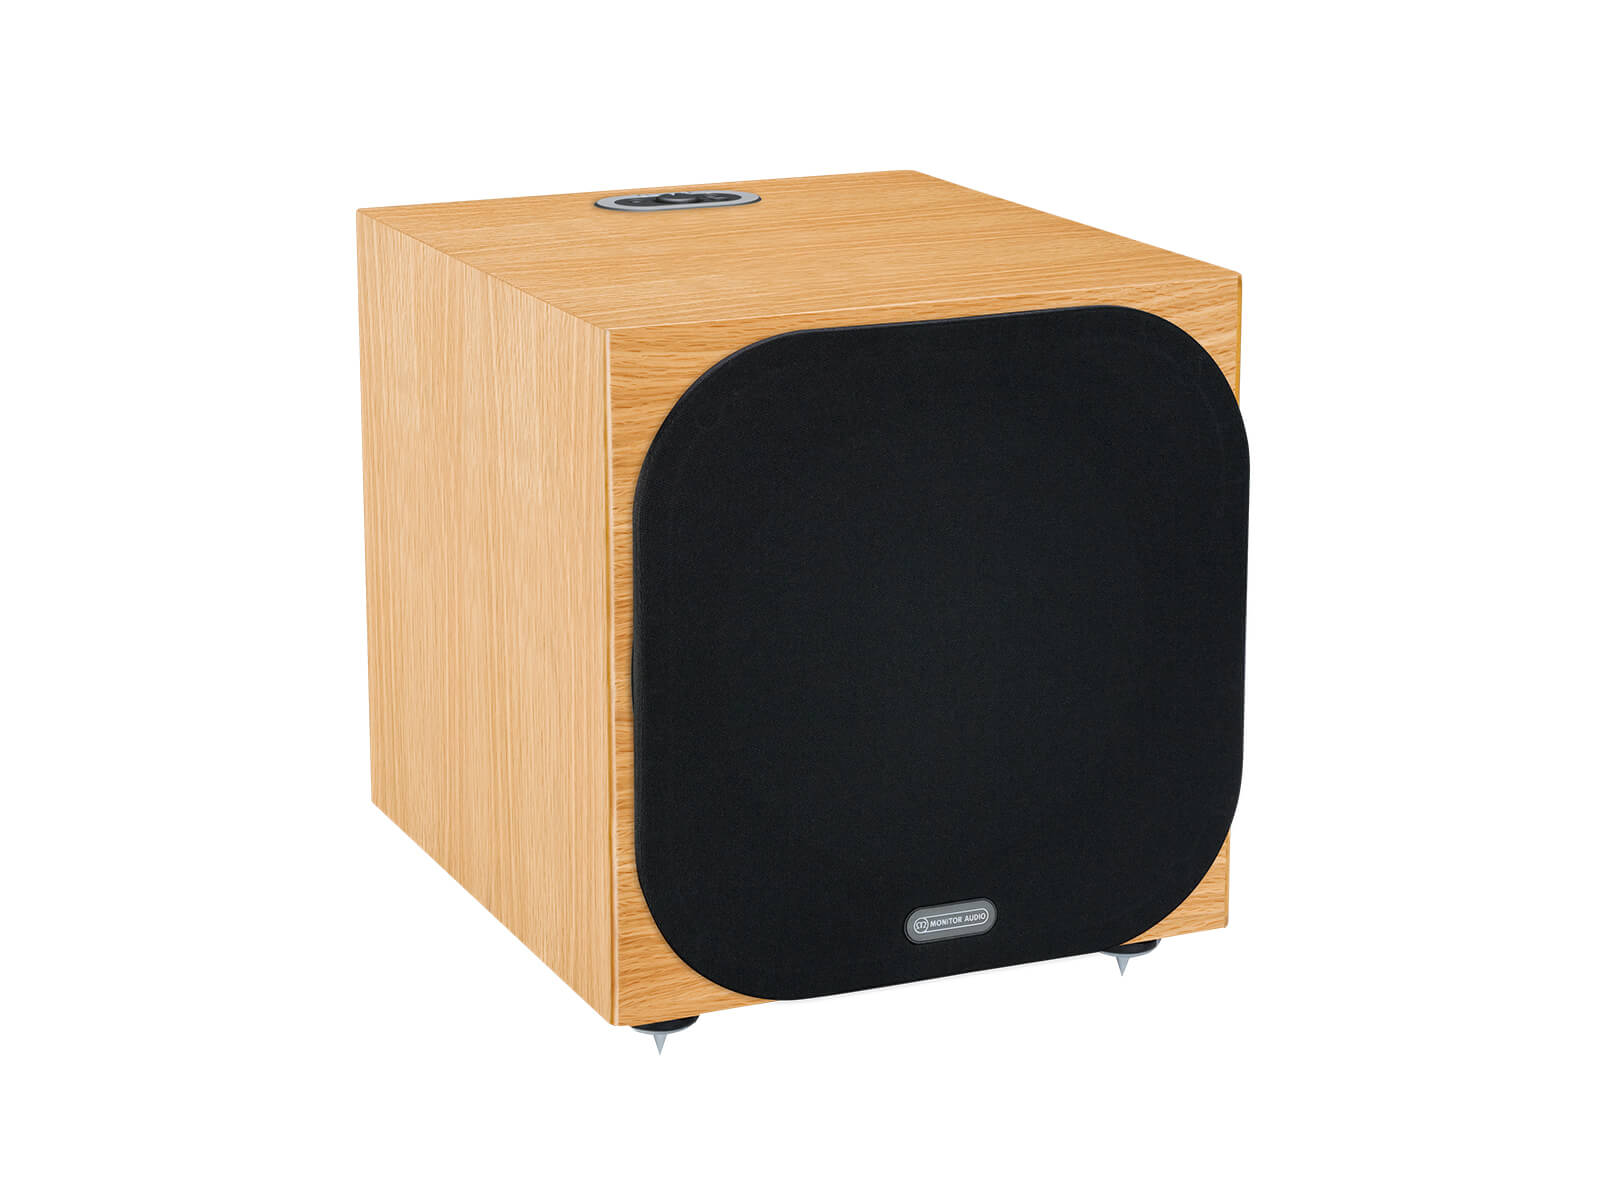 Silver W-12 subwoofer, featuring a grille and a natural oak finish.